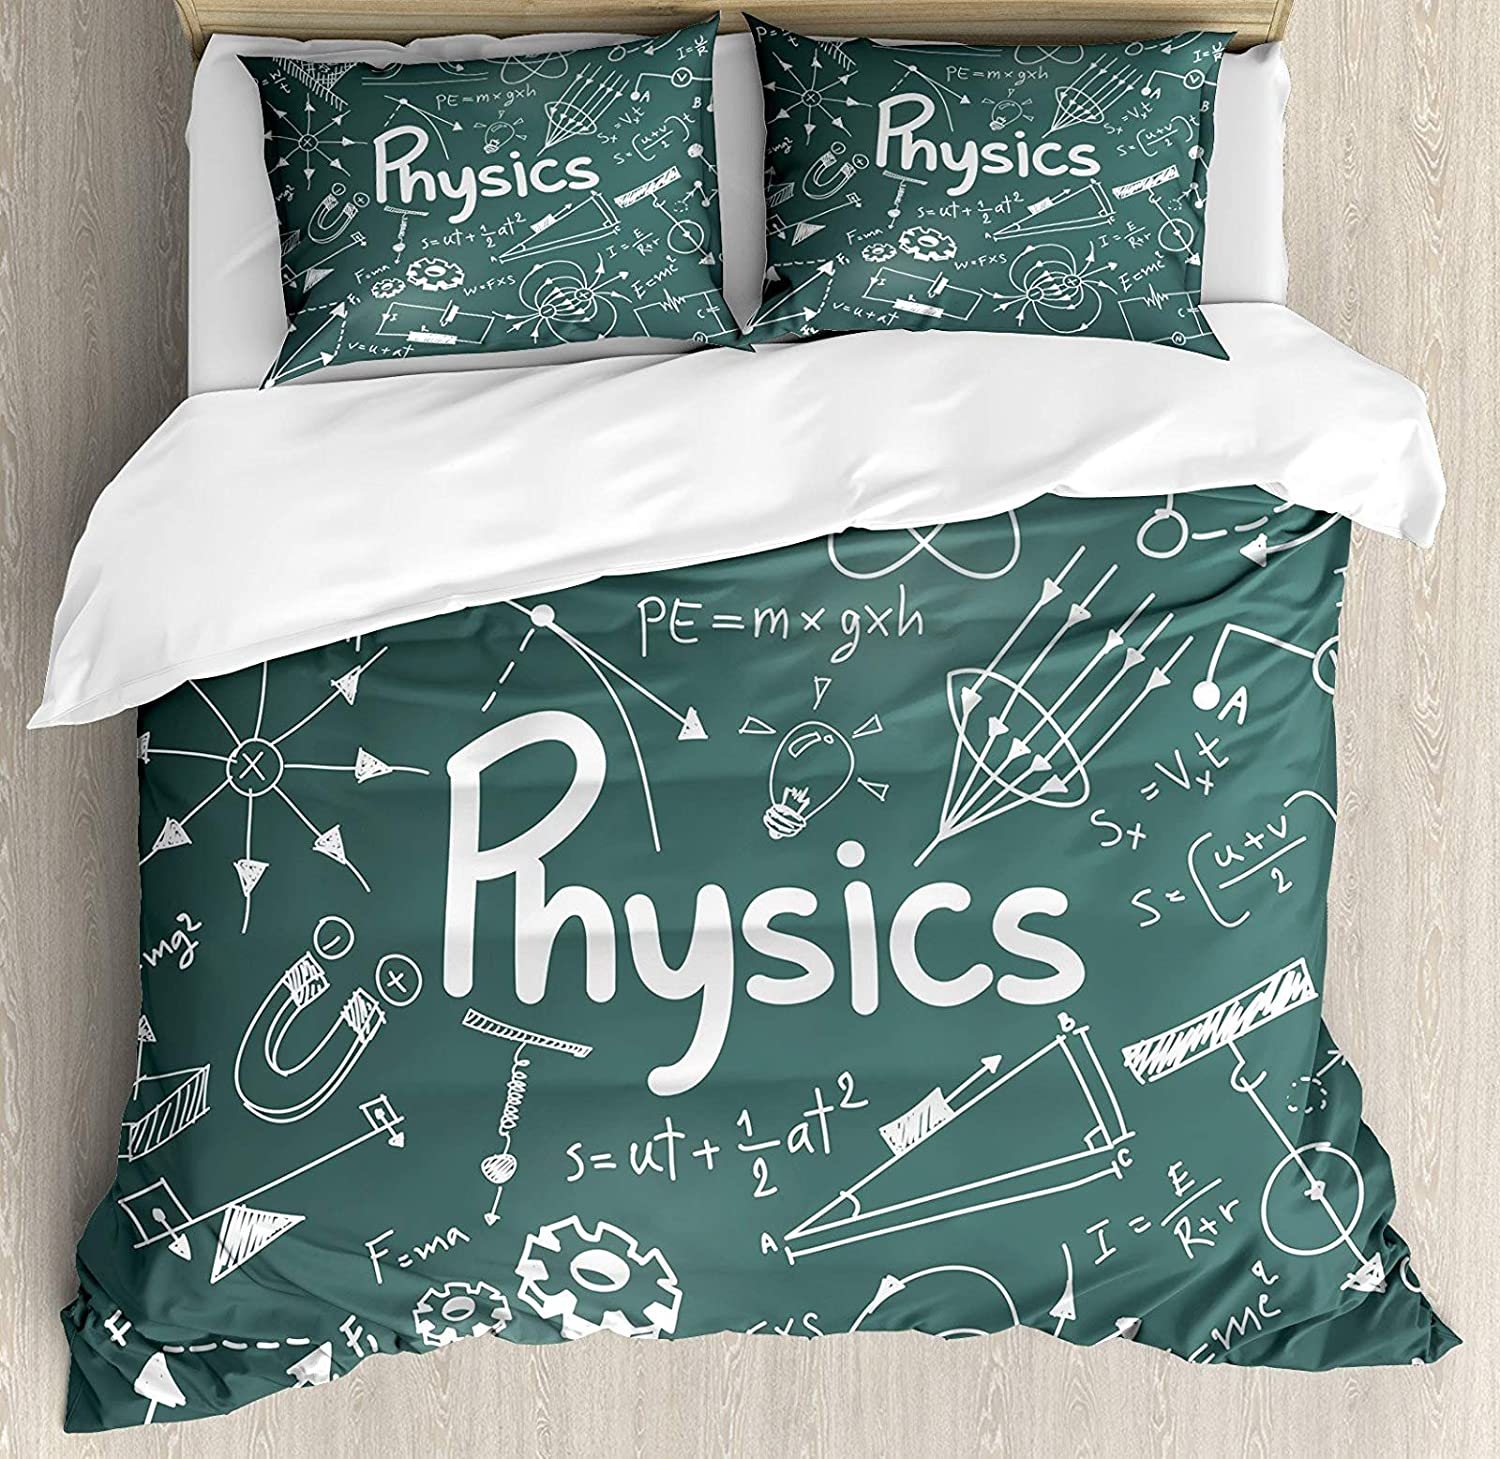 Doodle Full Size 4 Pcs Bedding Set, Physics Science Education Theme Mathematical Formula Equation on School Board All Season Duvet Cover Bed Set, Army Green White